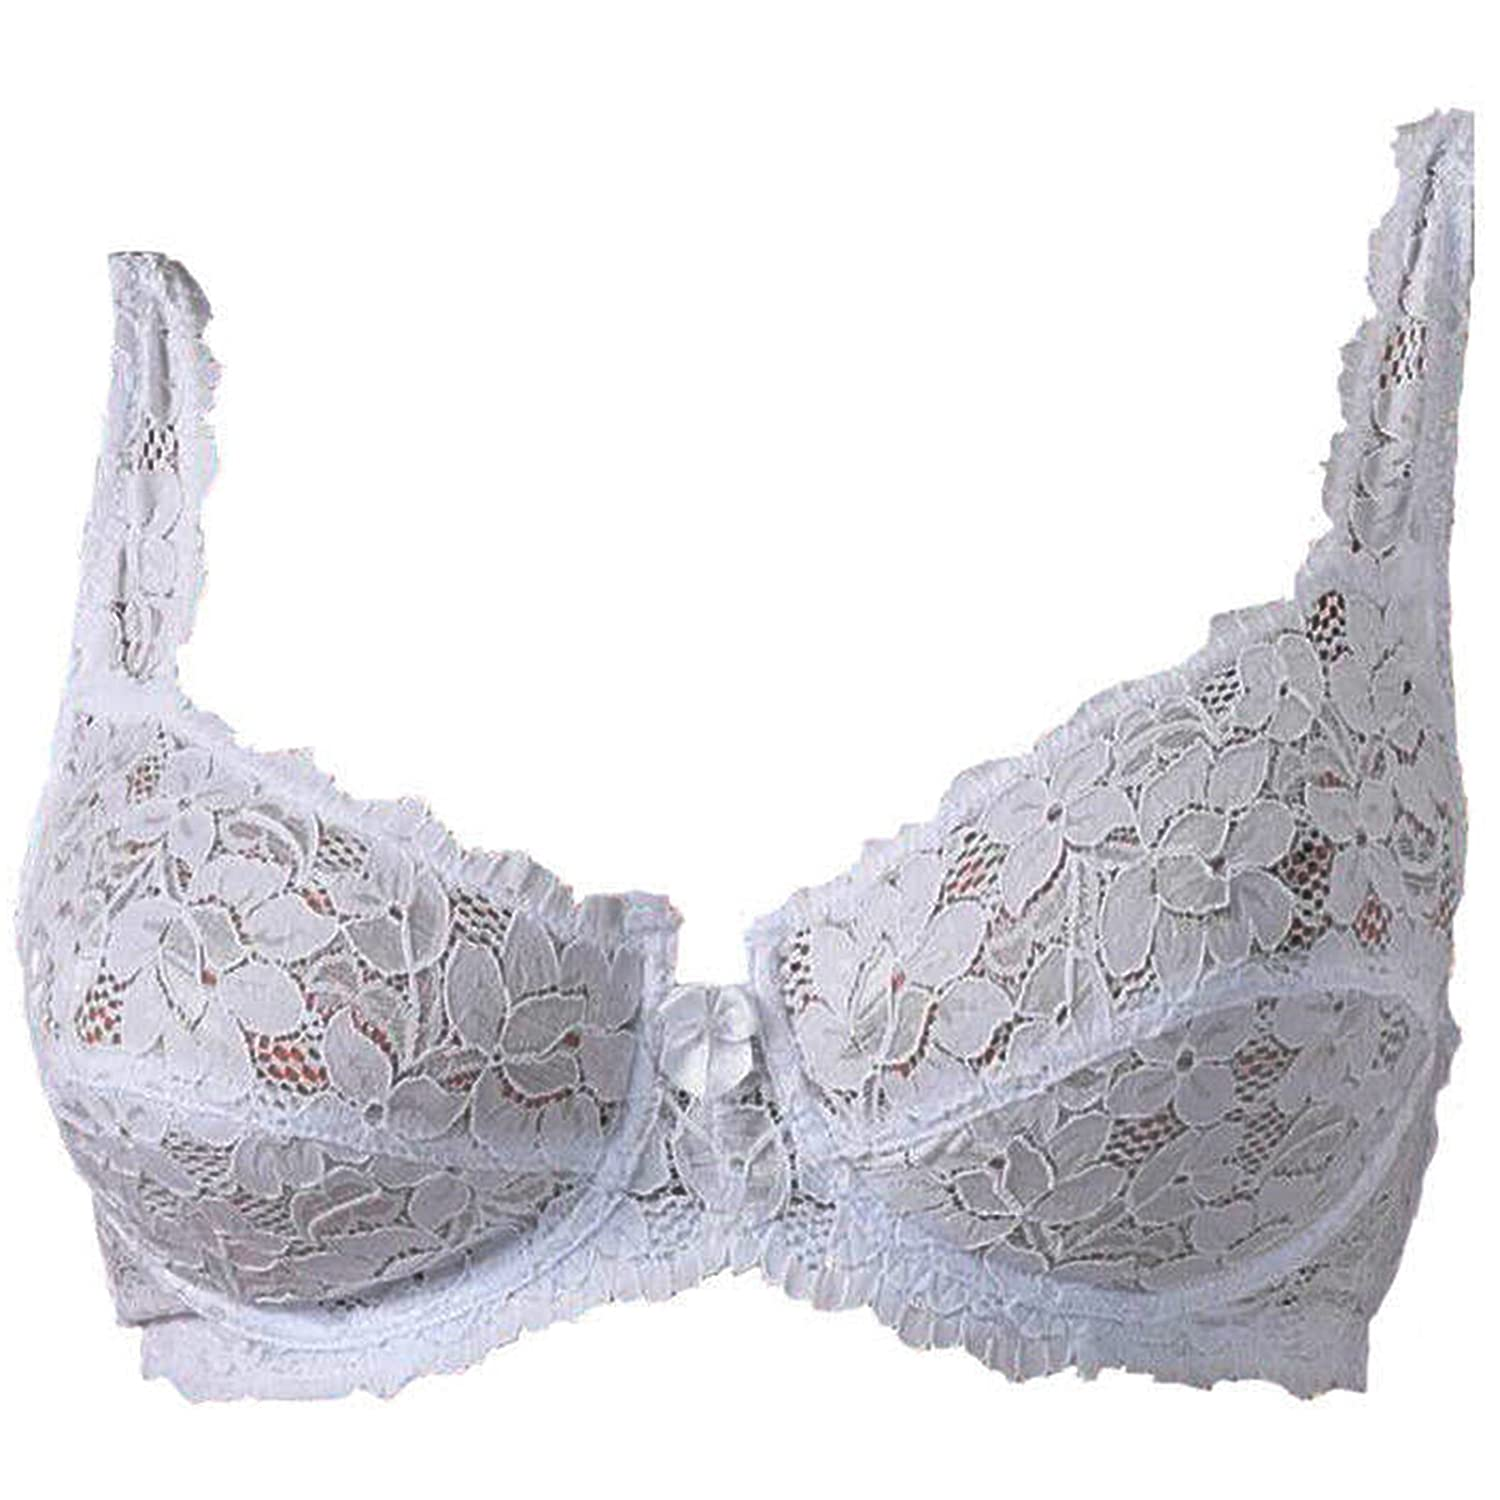 Get The Trend Ladies Underwired Designer Non Padded Bra Lace Bra by Marlon Black Or White Sizes 34-44 B-DD Prime